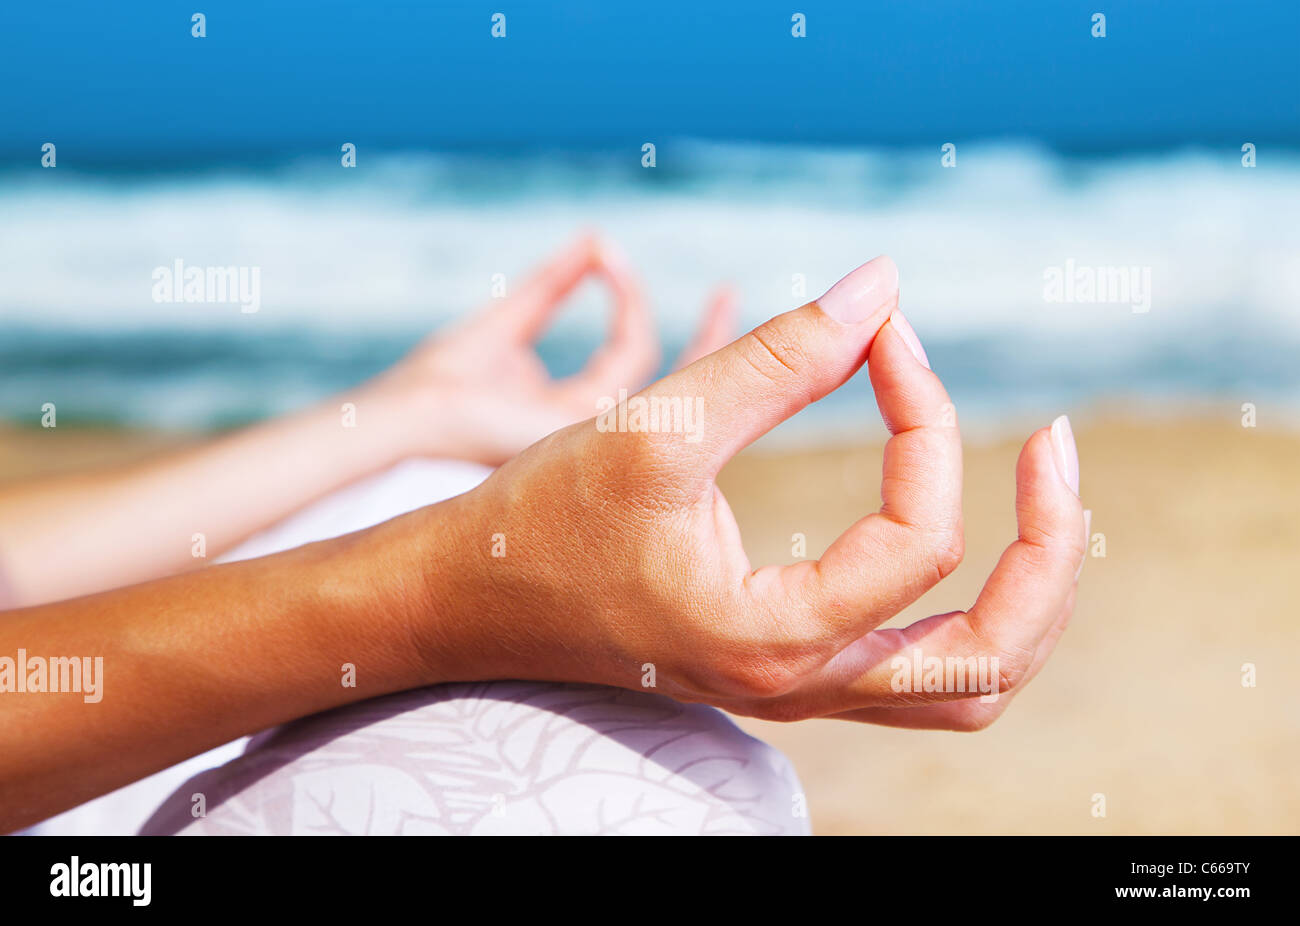 Yoga meditation on the beach, healthy female in peace, soul and mind zen balance concept - Stock Image